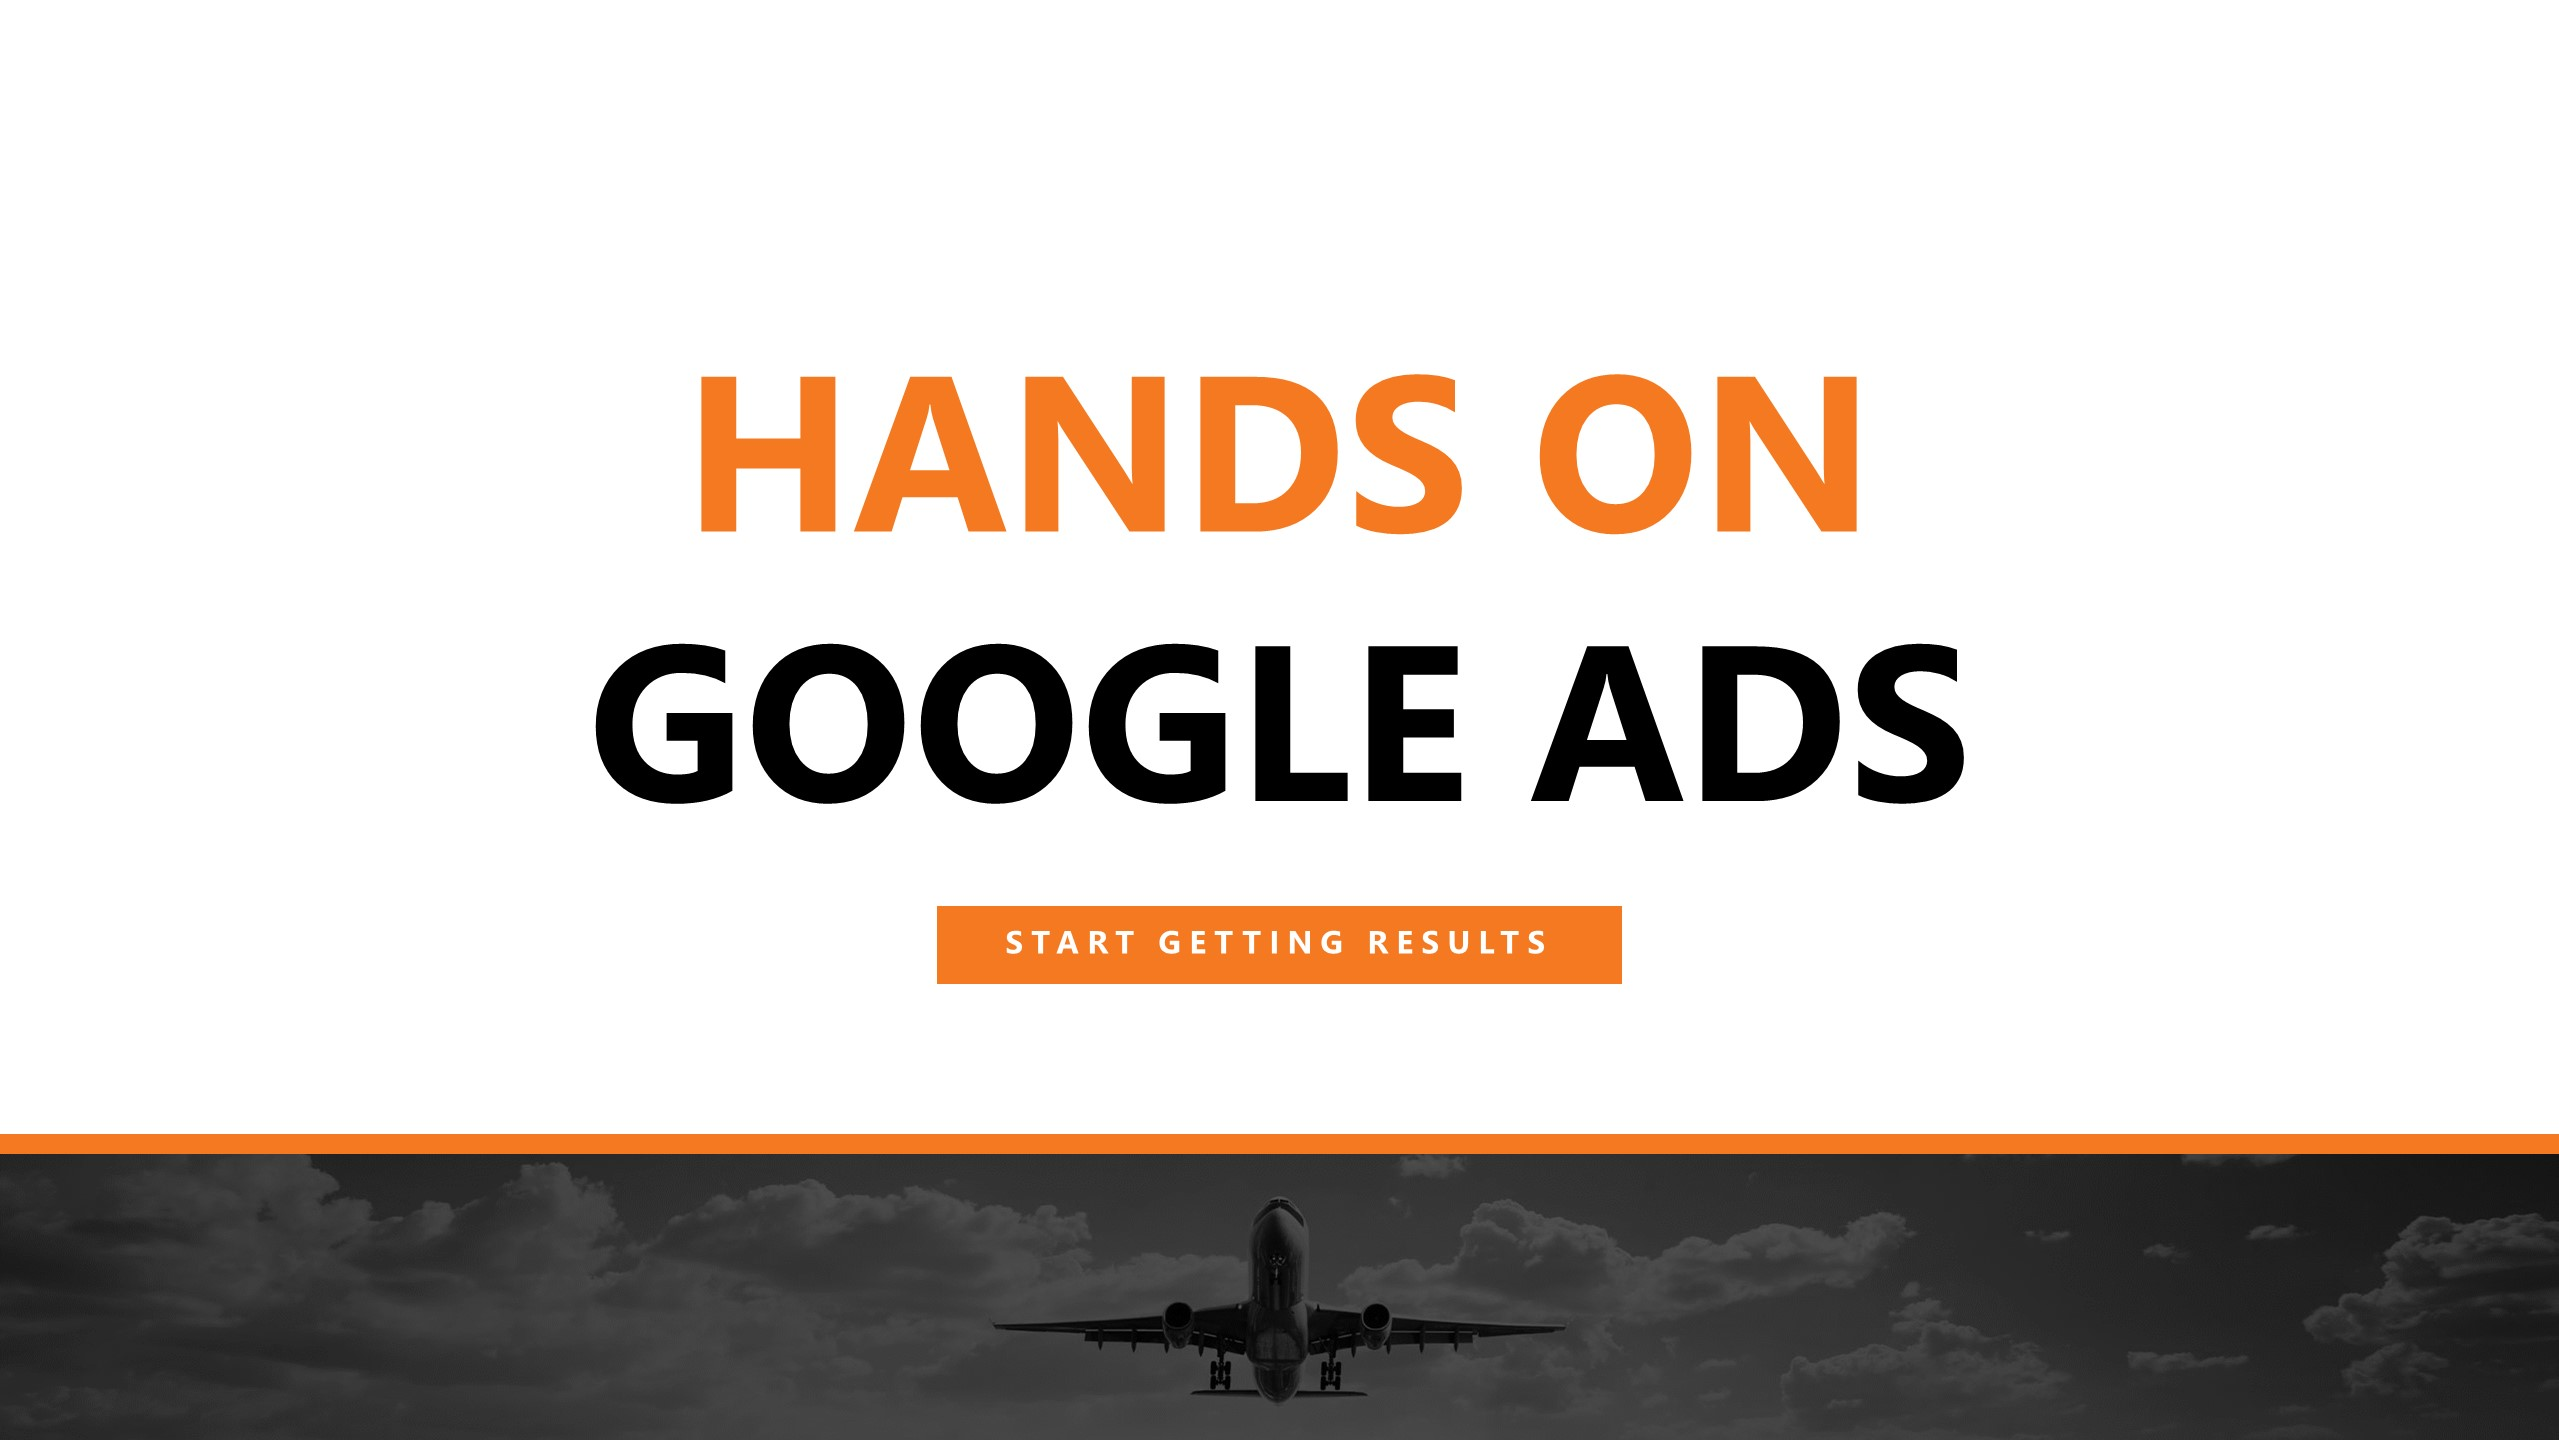 Hands On: Get the Best out of Google Adwords, a Perth Workshop without the Sales Pitch!